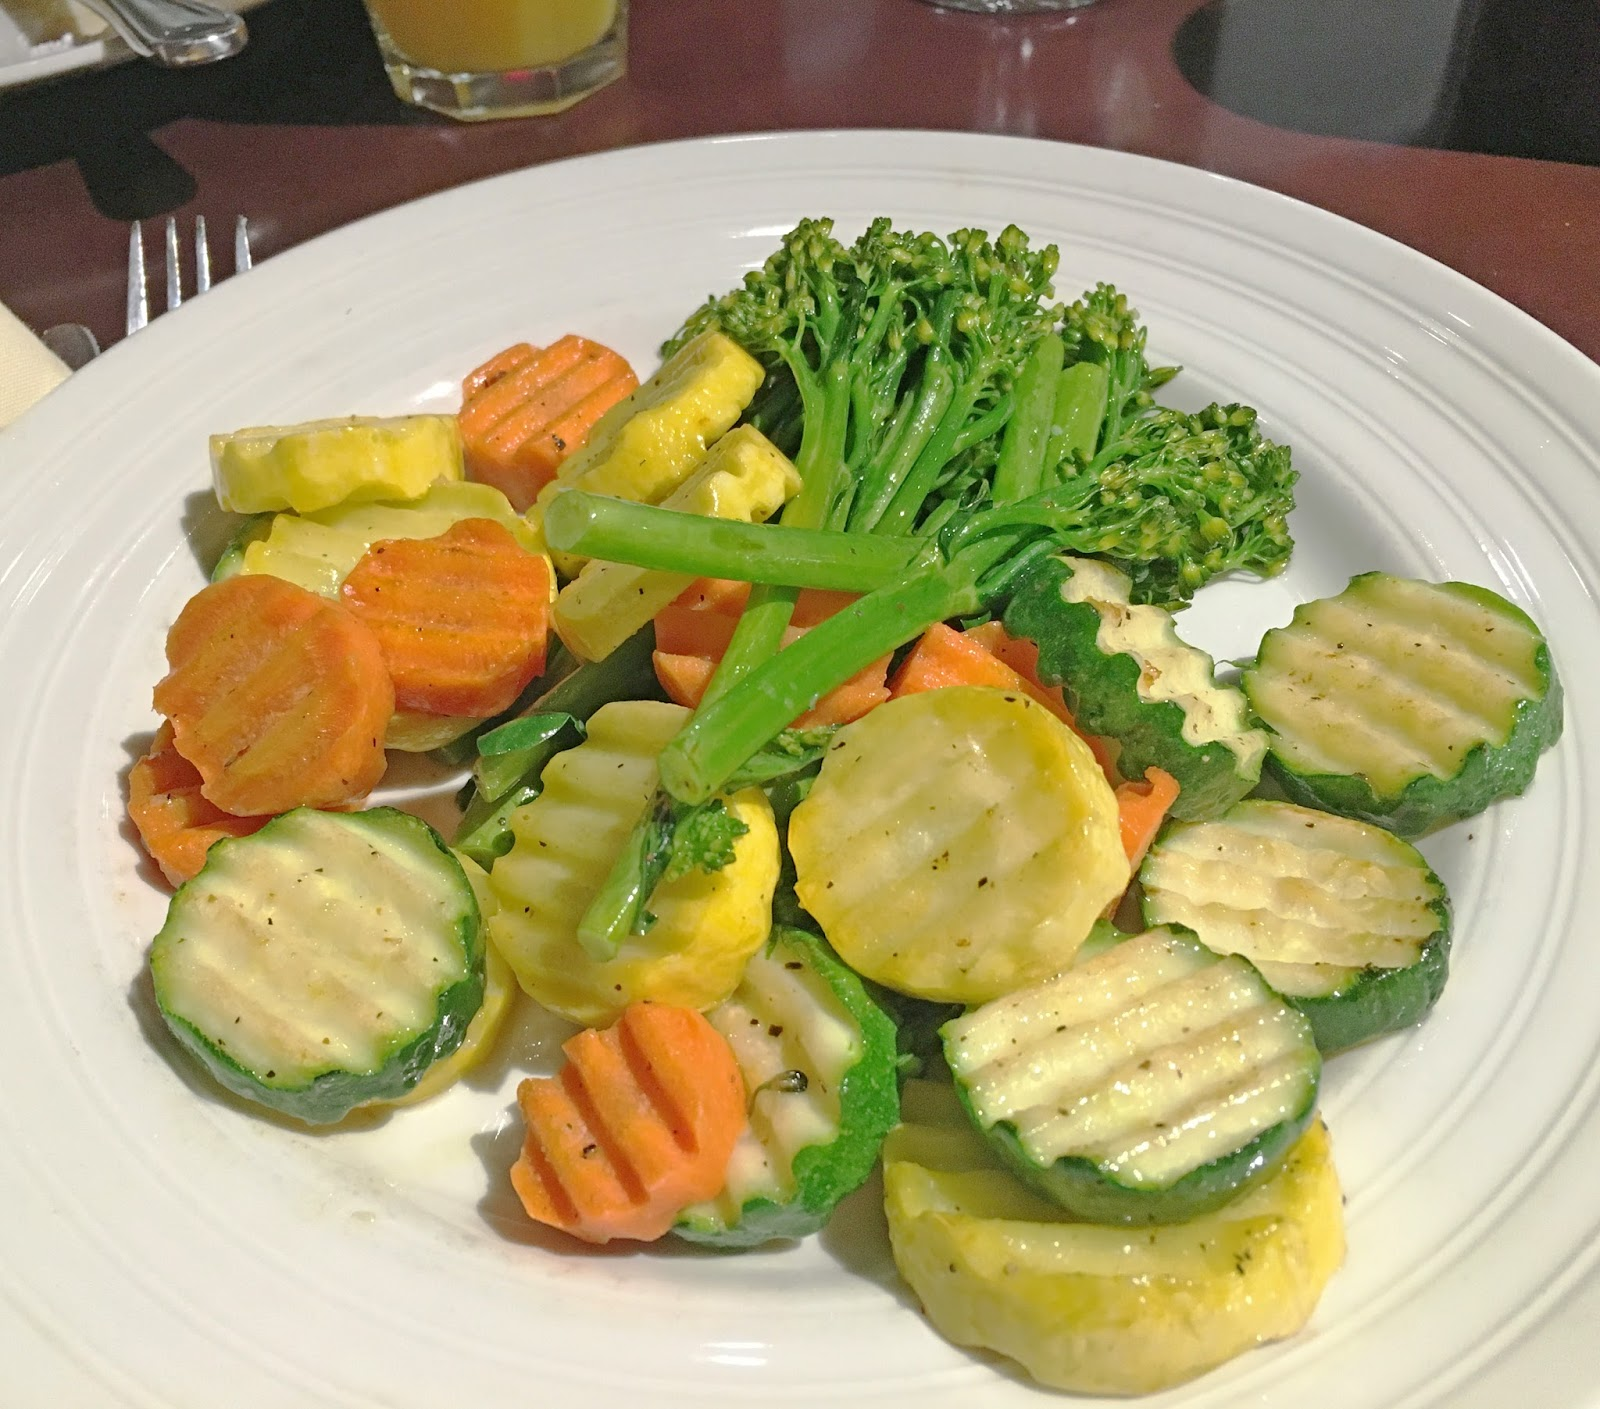 vegetables for breakfast at the hotel in Fort Worth, Texas